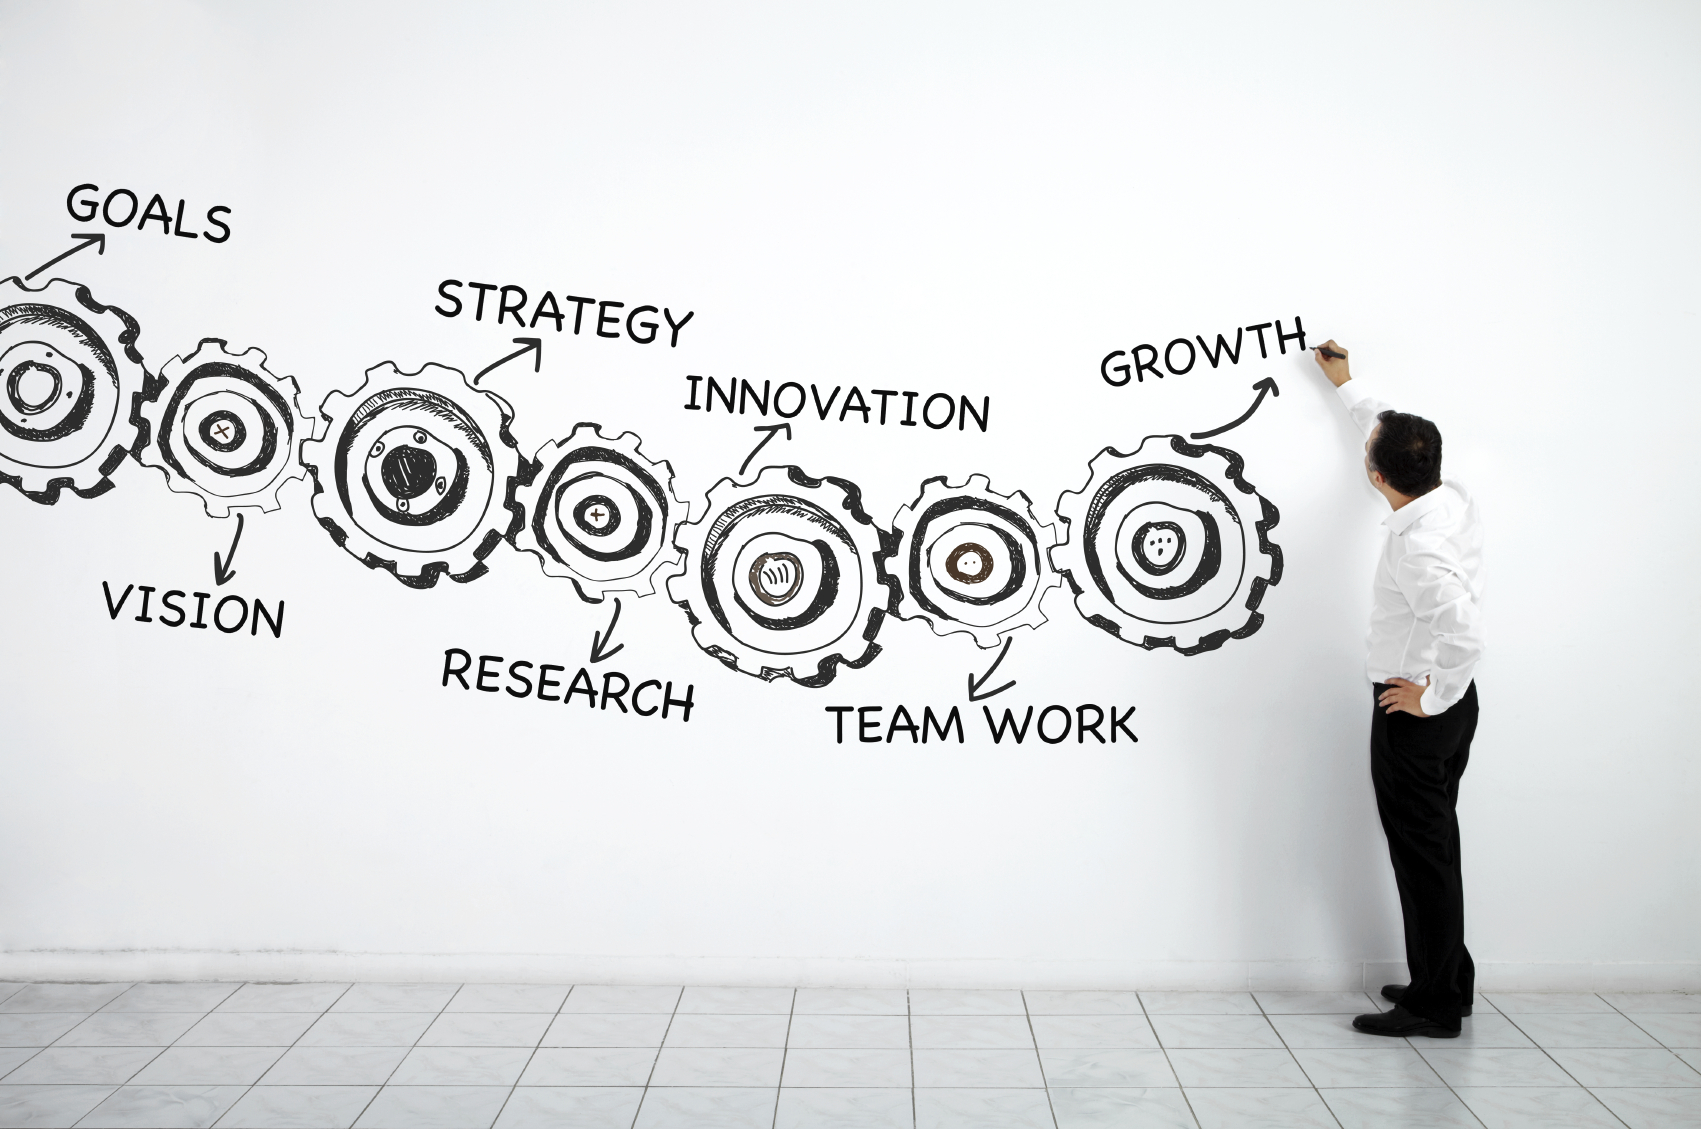 Cogs being drawn on a wall by a person in business clothes representing goals, vision, strategy, research, innovation, team work and upward growth.